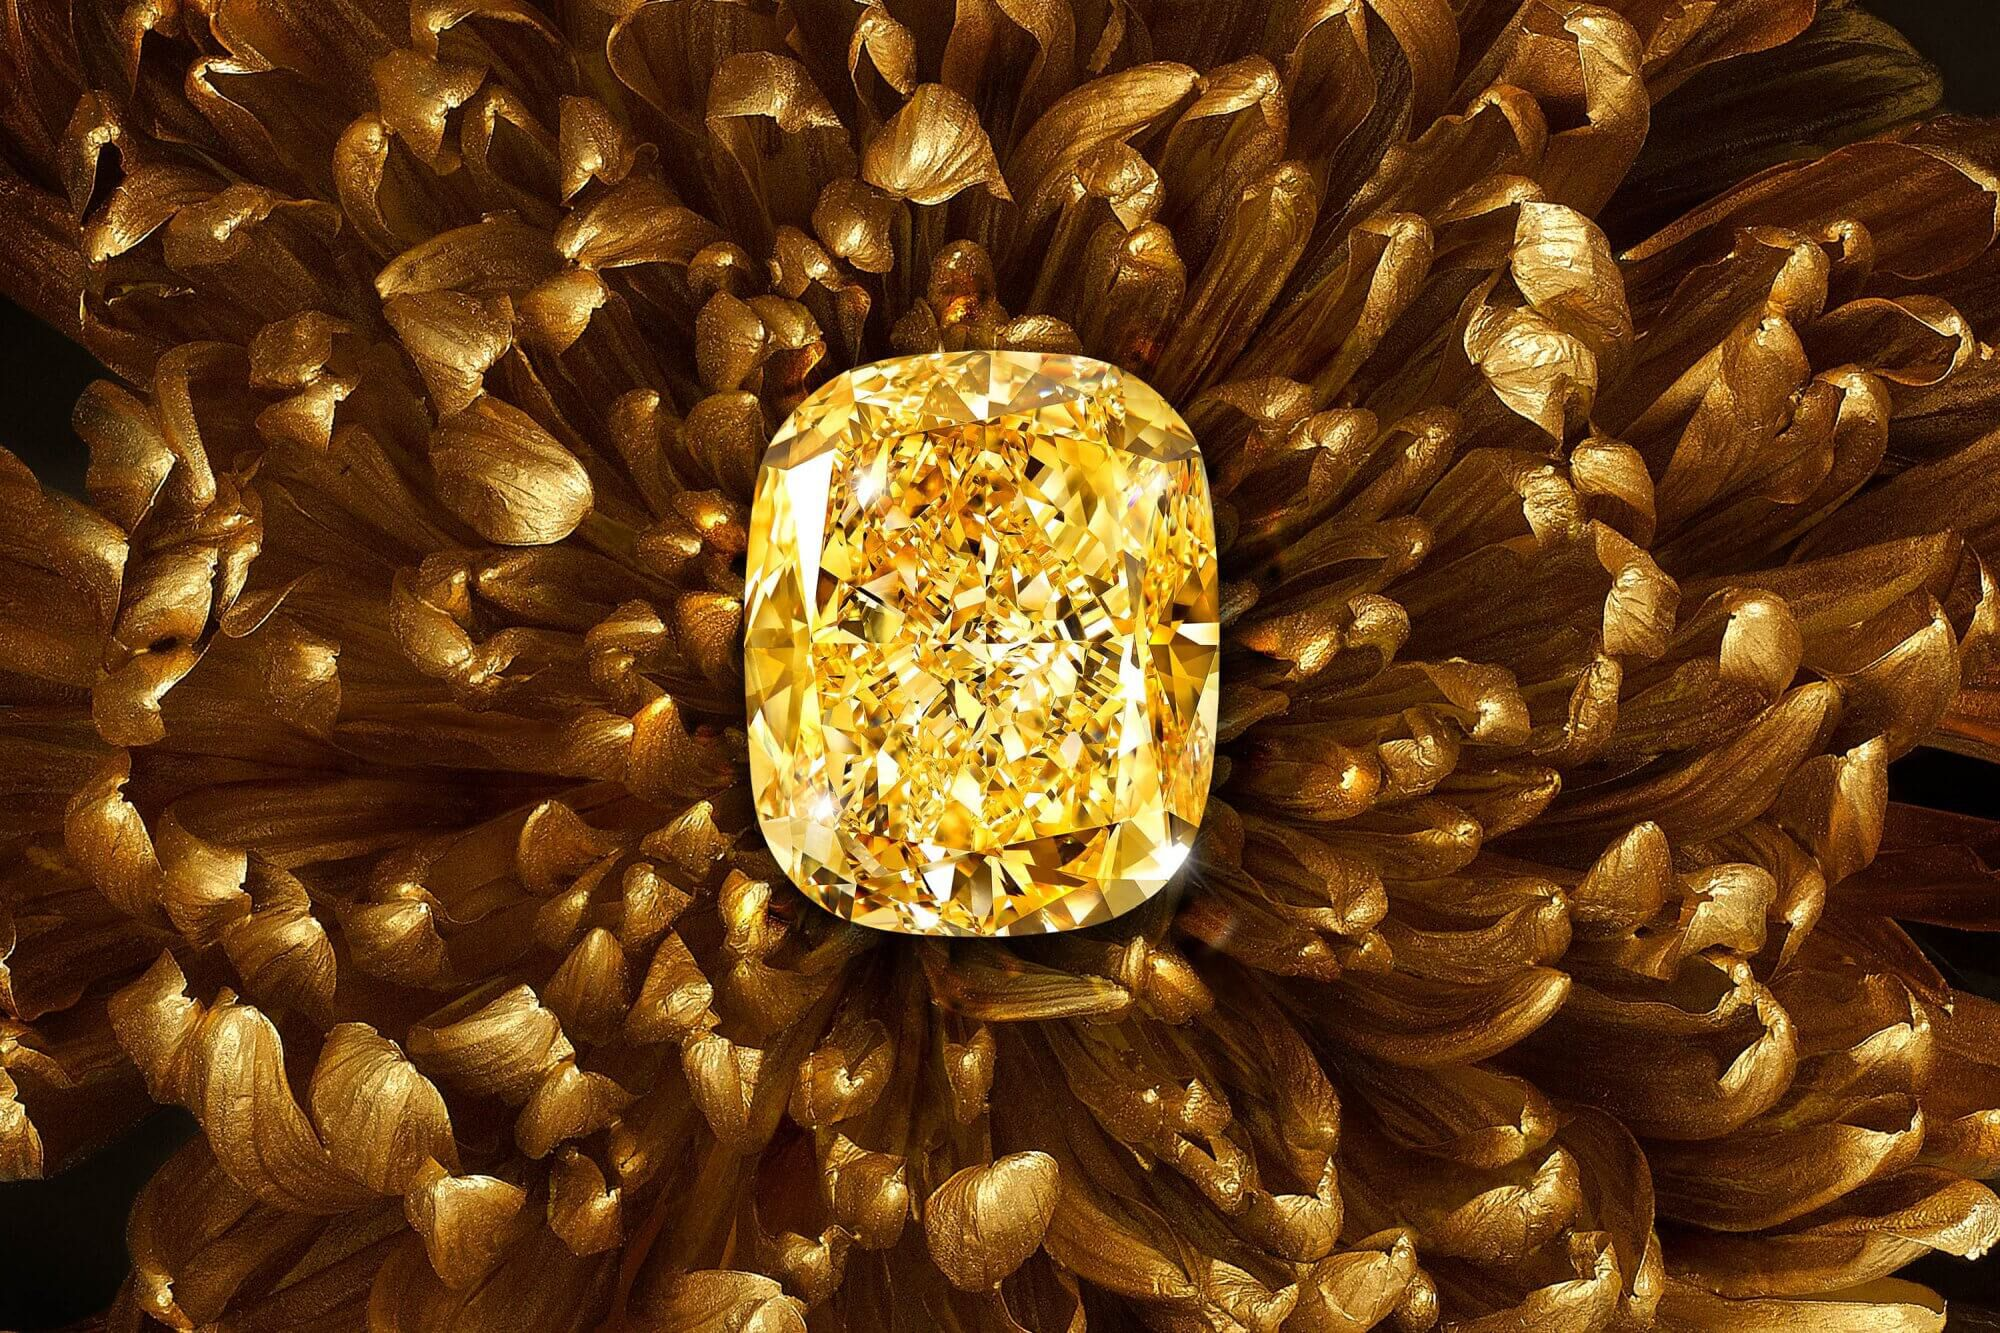 The famous Graff Golden Empress yellow diamond with a background of golden flower petals